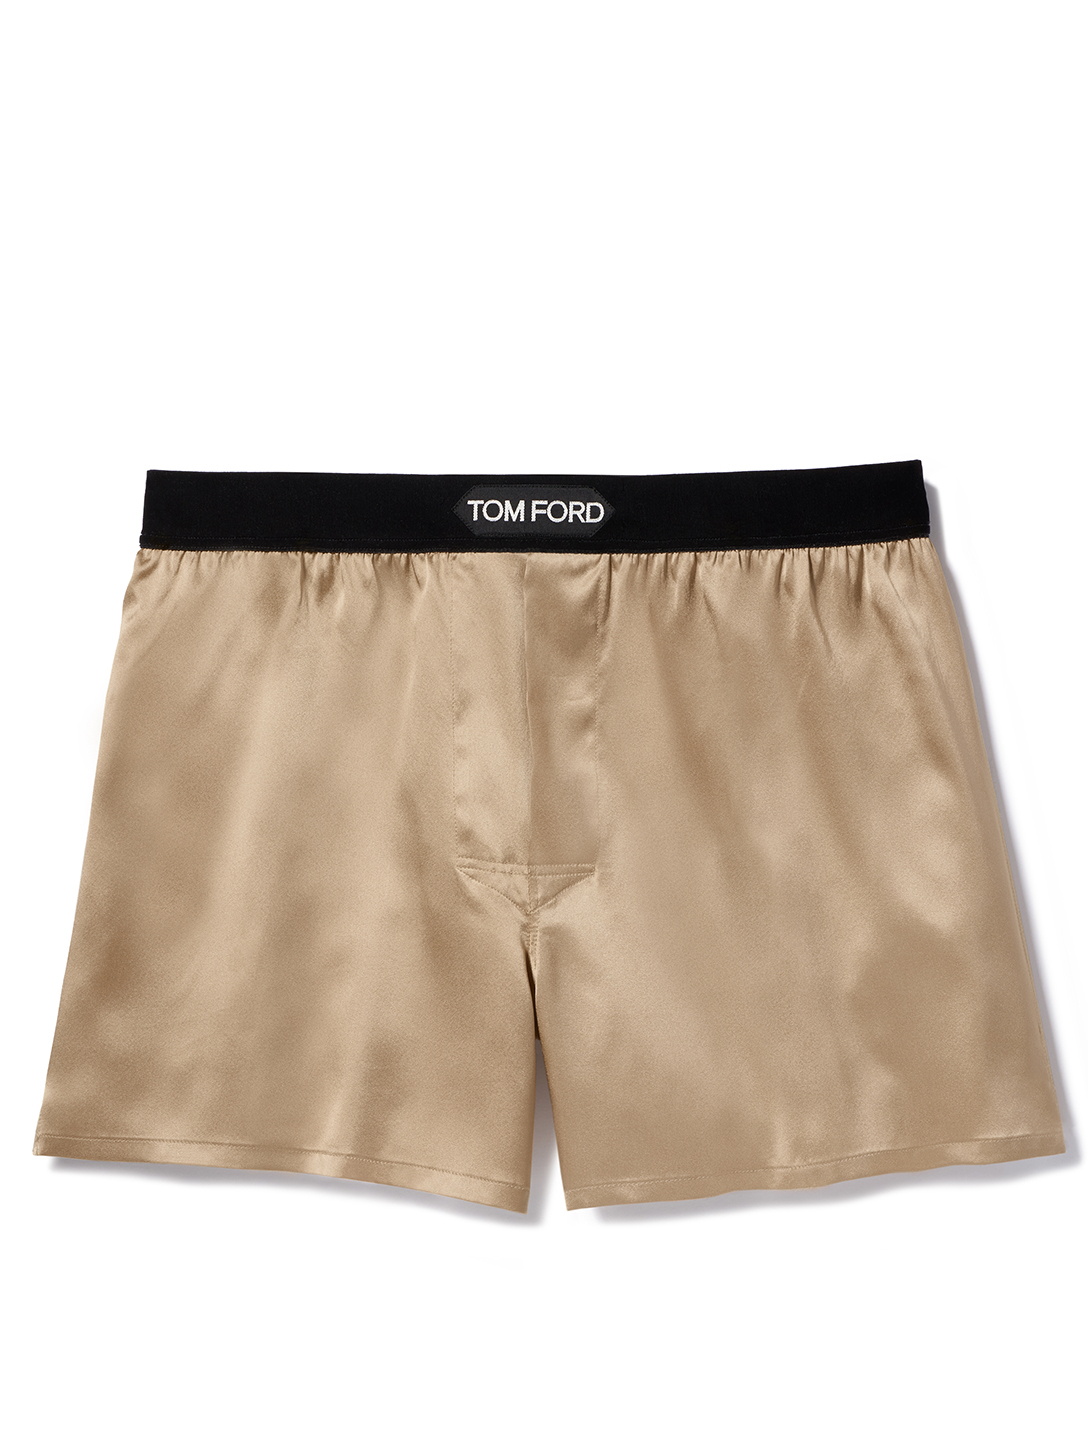 TOM FORD Solid Silk Short Boxers With Logo Men's Beige